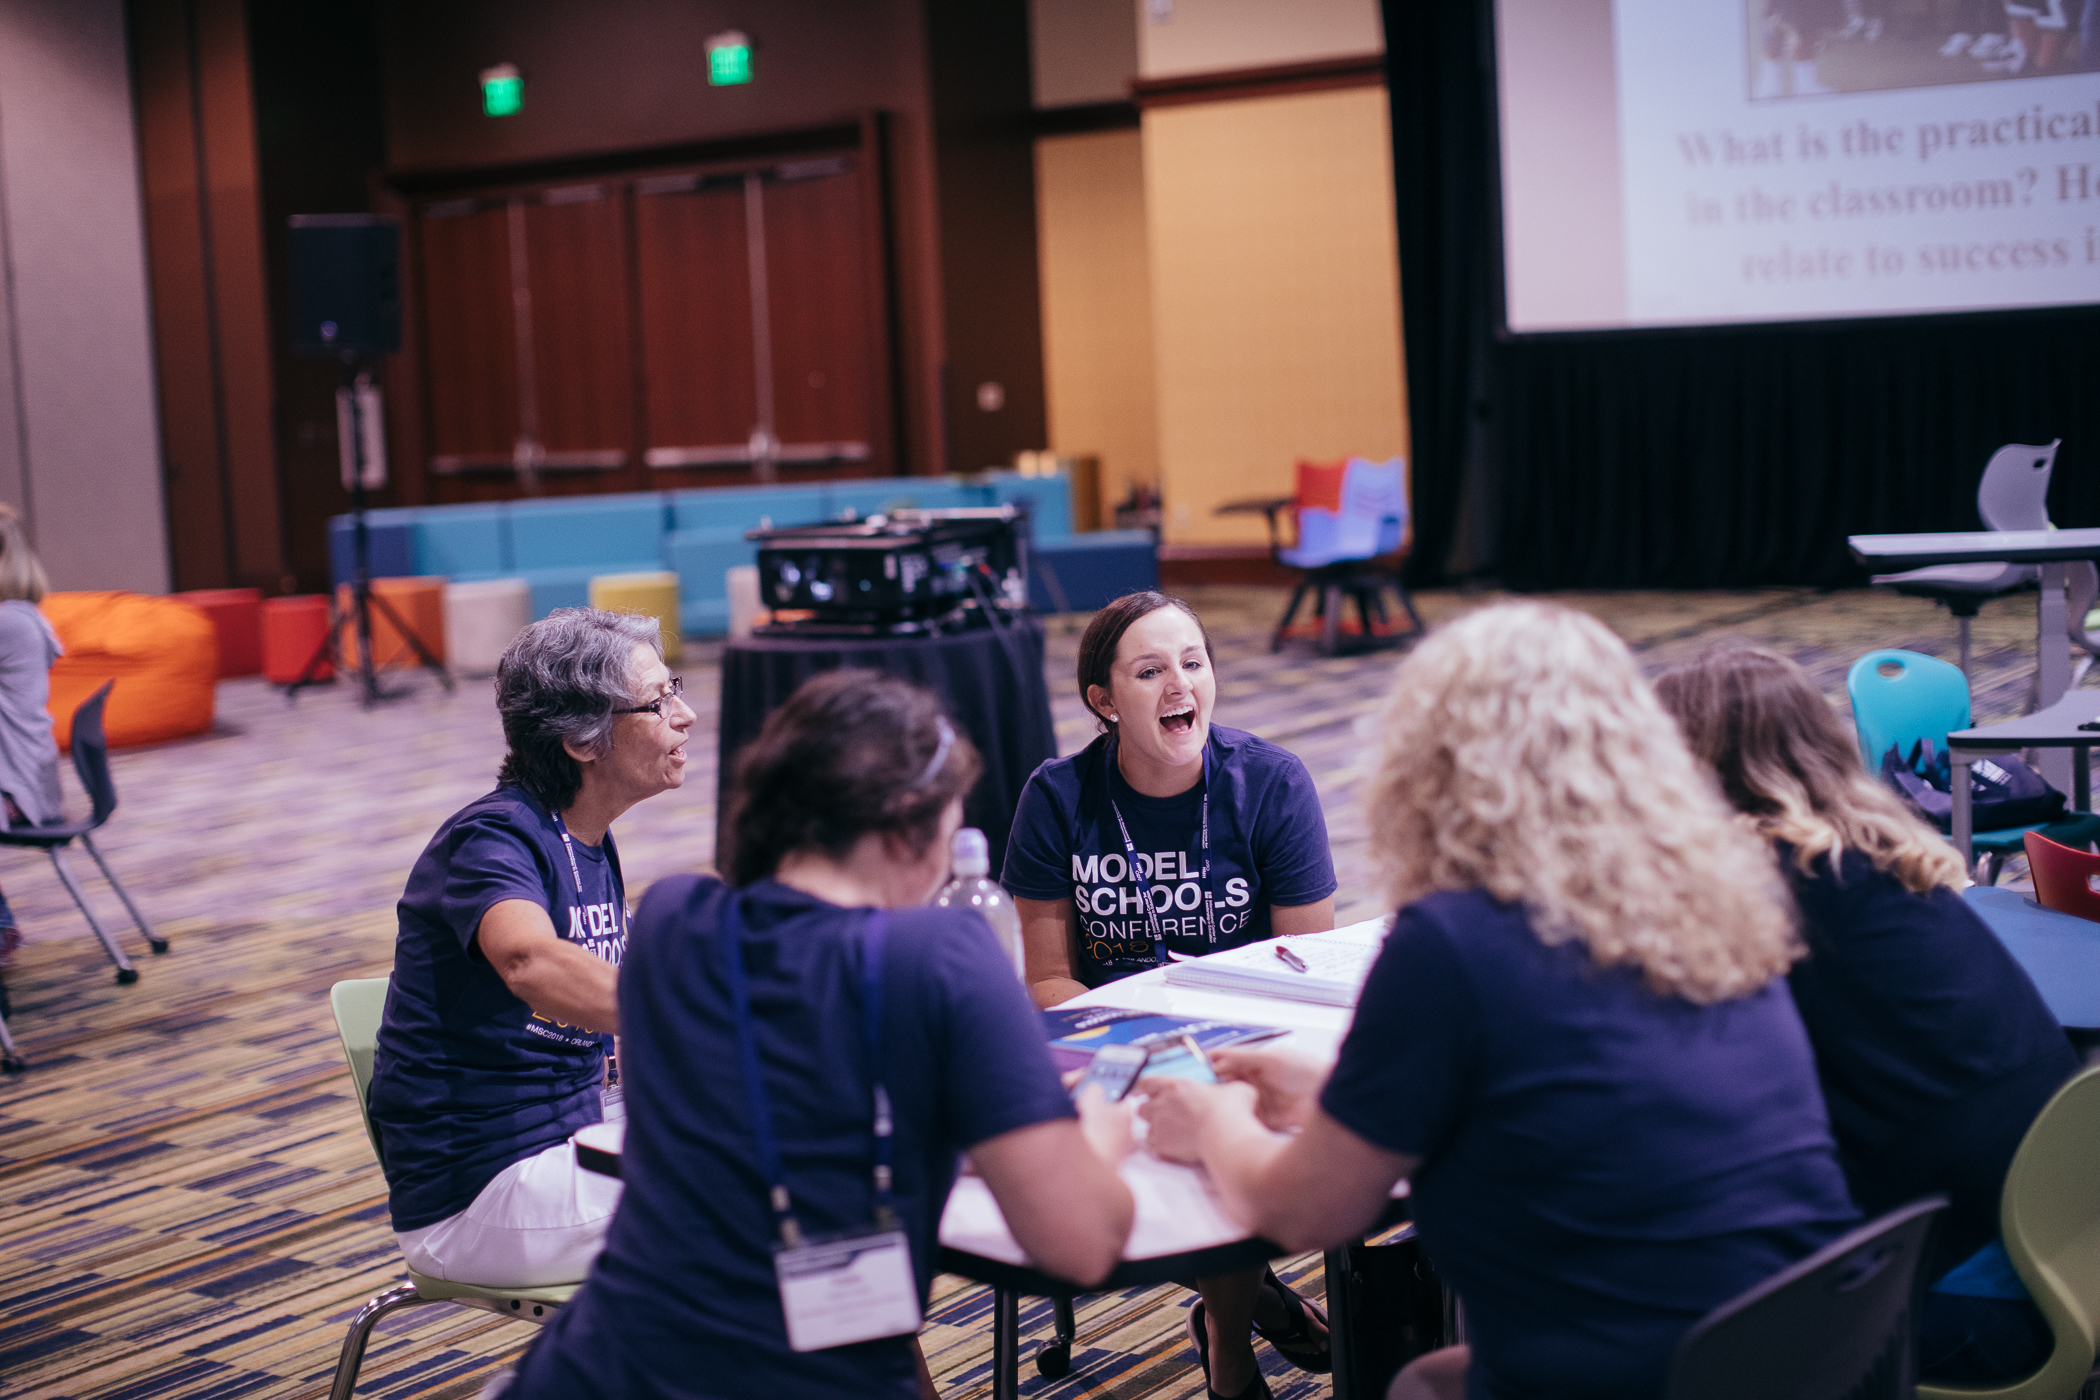 live event commercial photography brand storytelling for education florida conference photographer ©2018abigailbobophotography-129.jpg